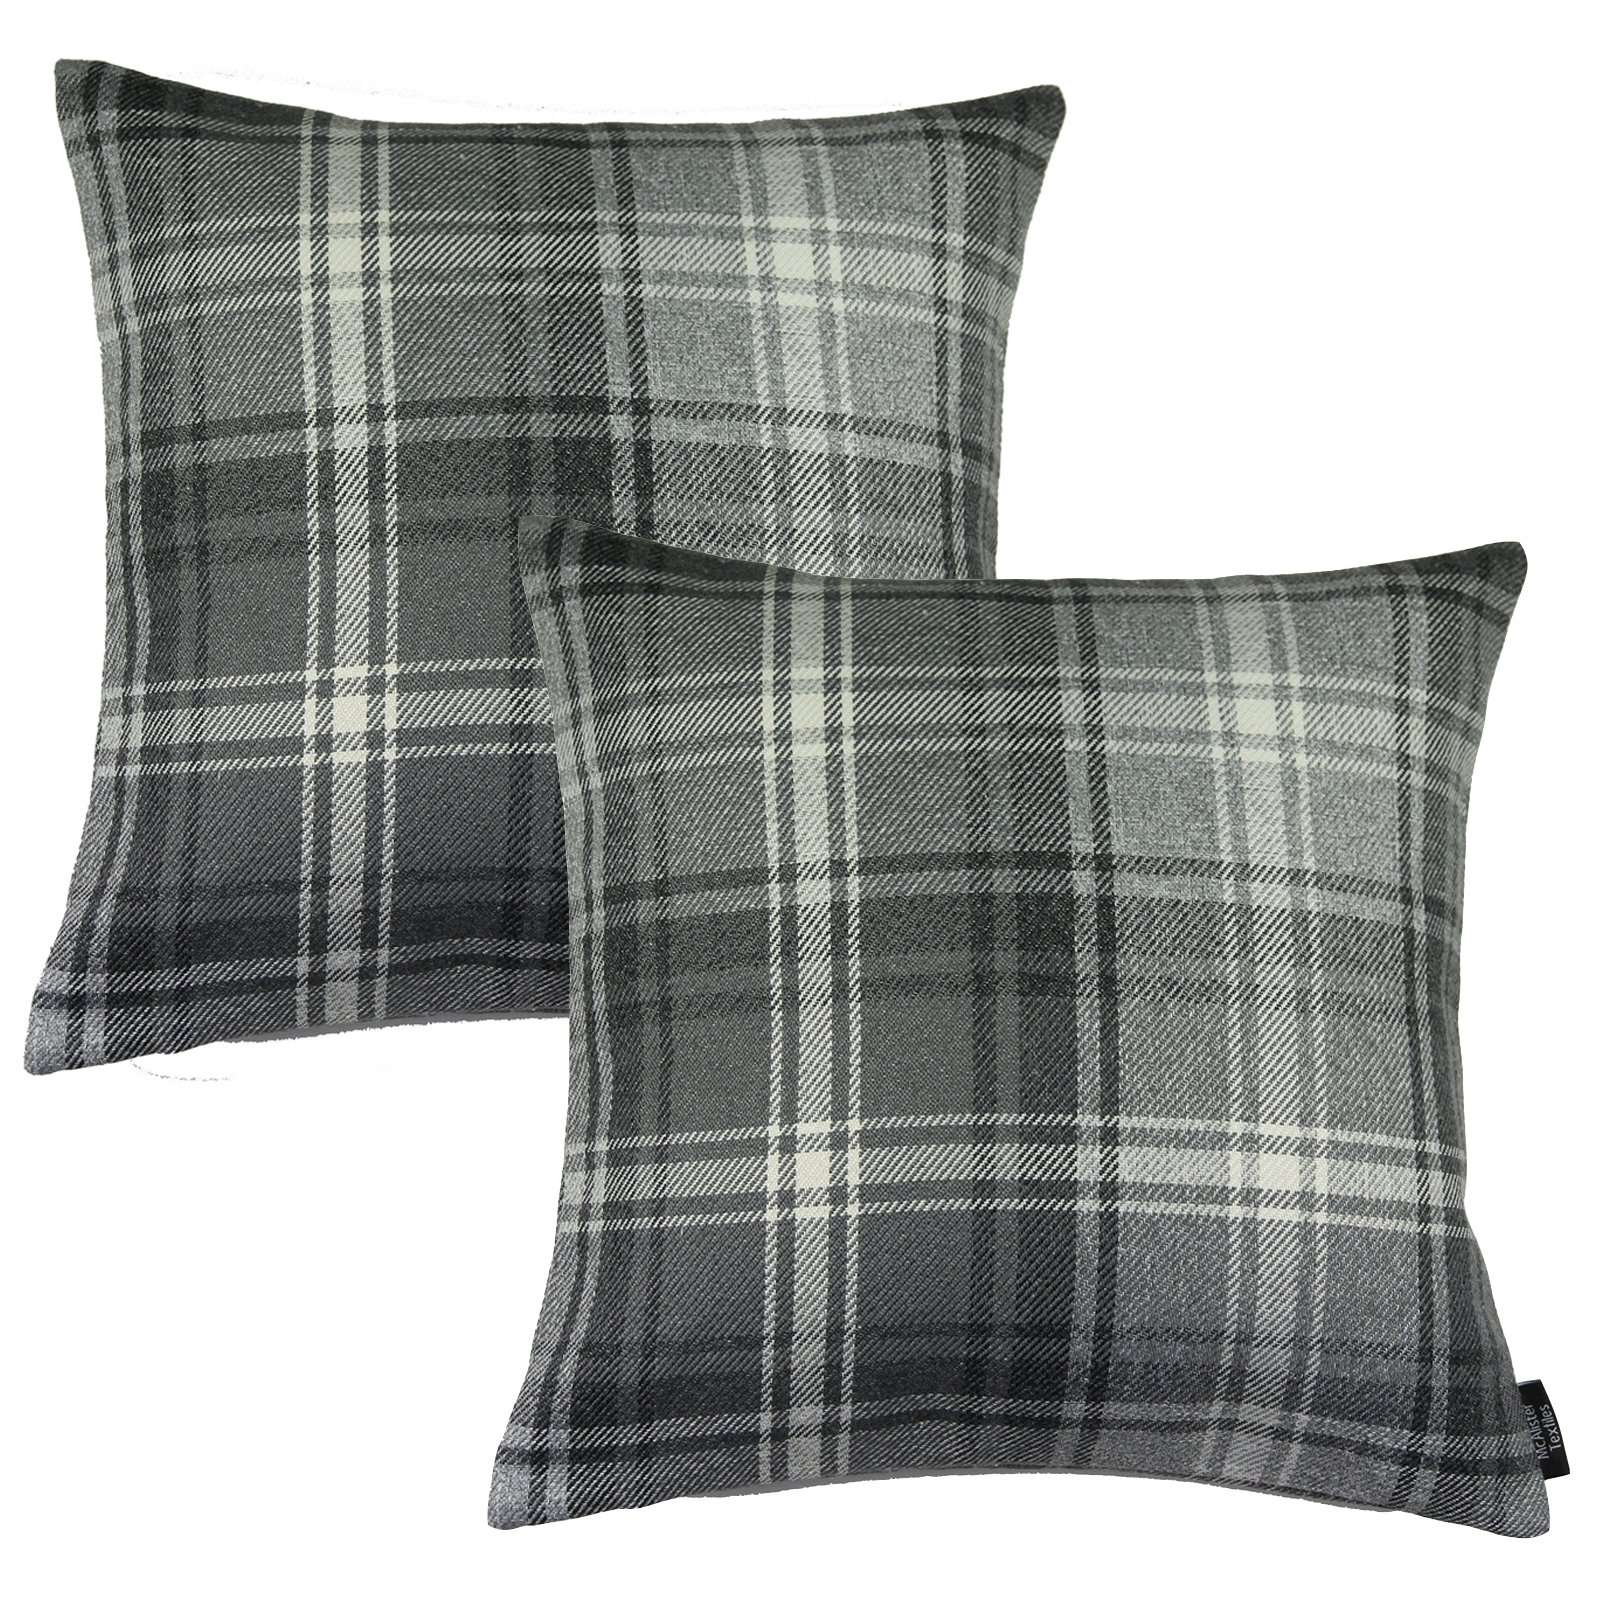 McAlister Textiles Angus Charcoal Grey Tartan 43cm x 43cm Cushion Sets Cushions and Covers Cushion Covers Set of 2